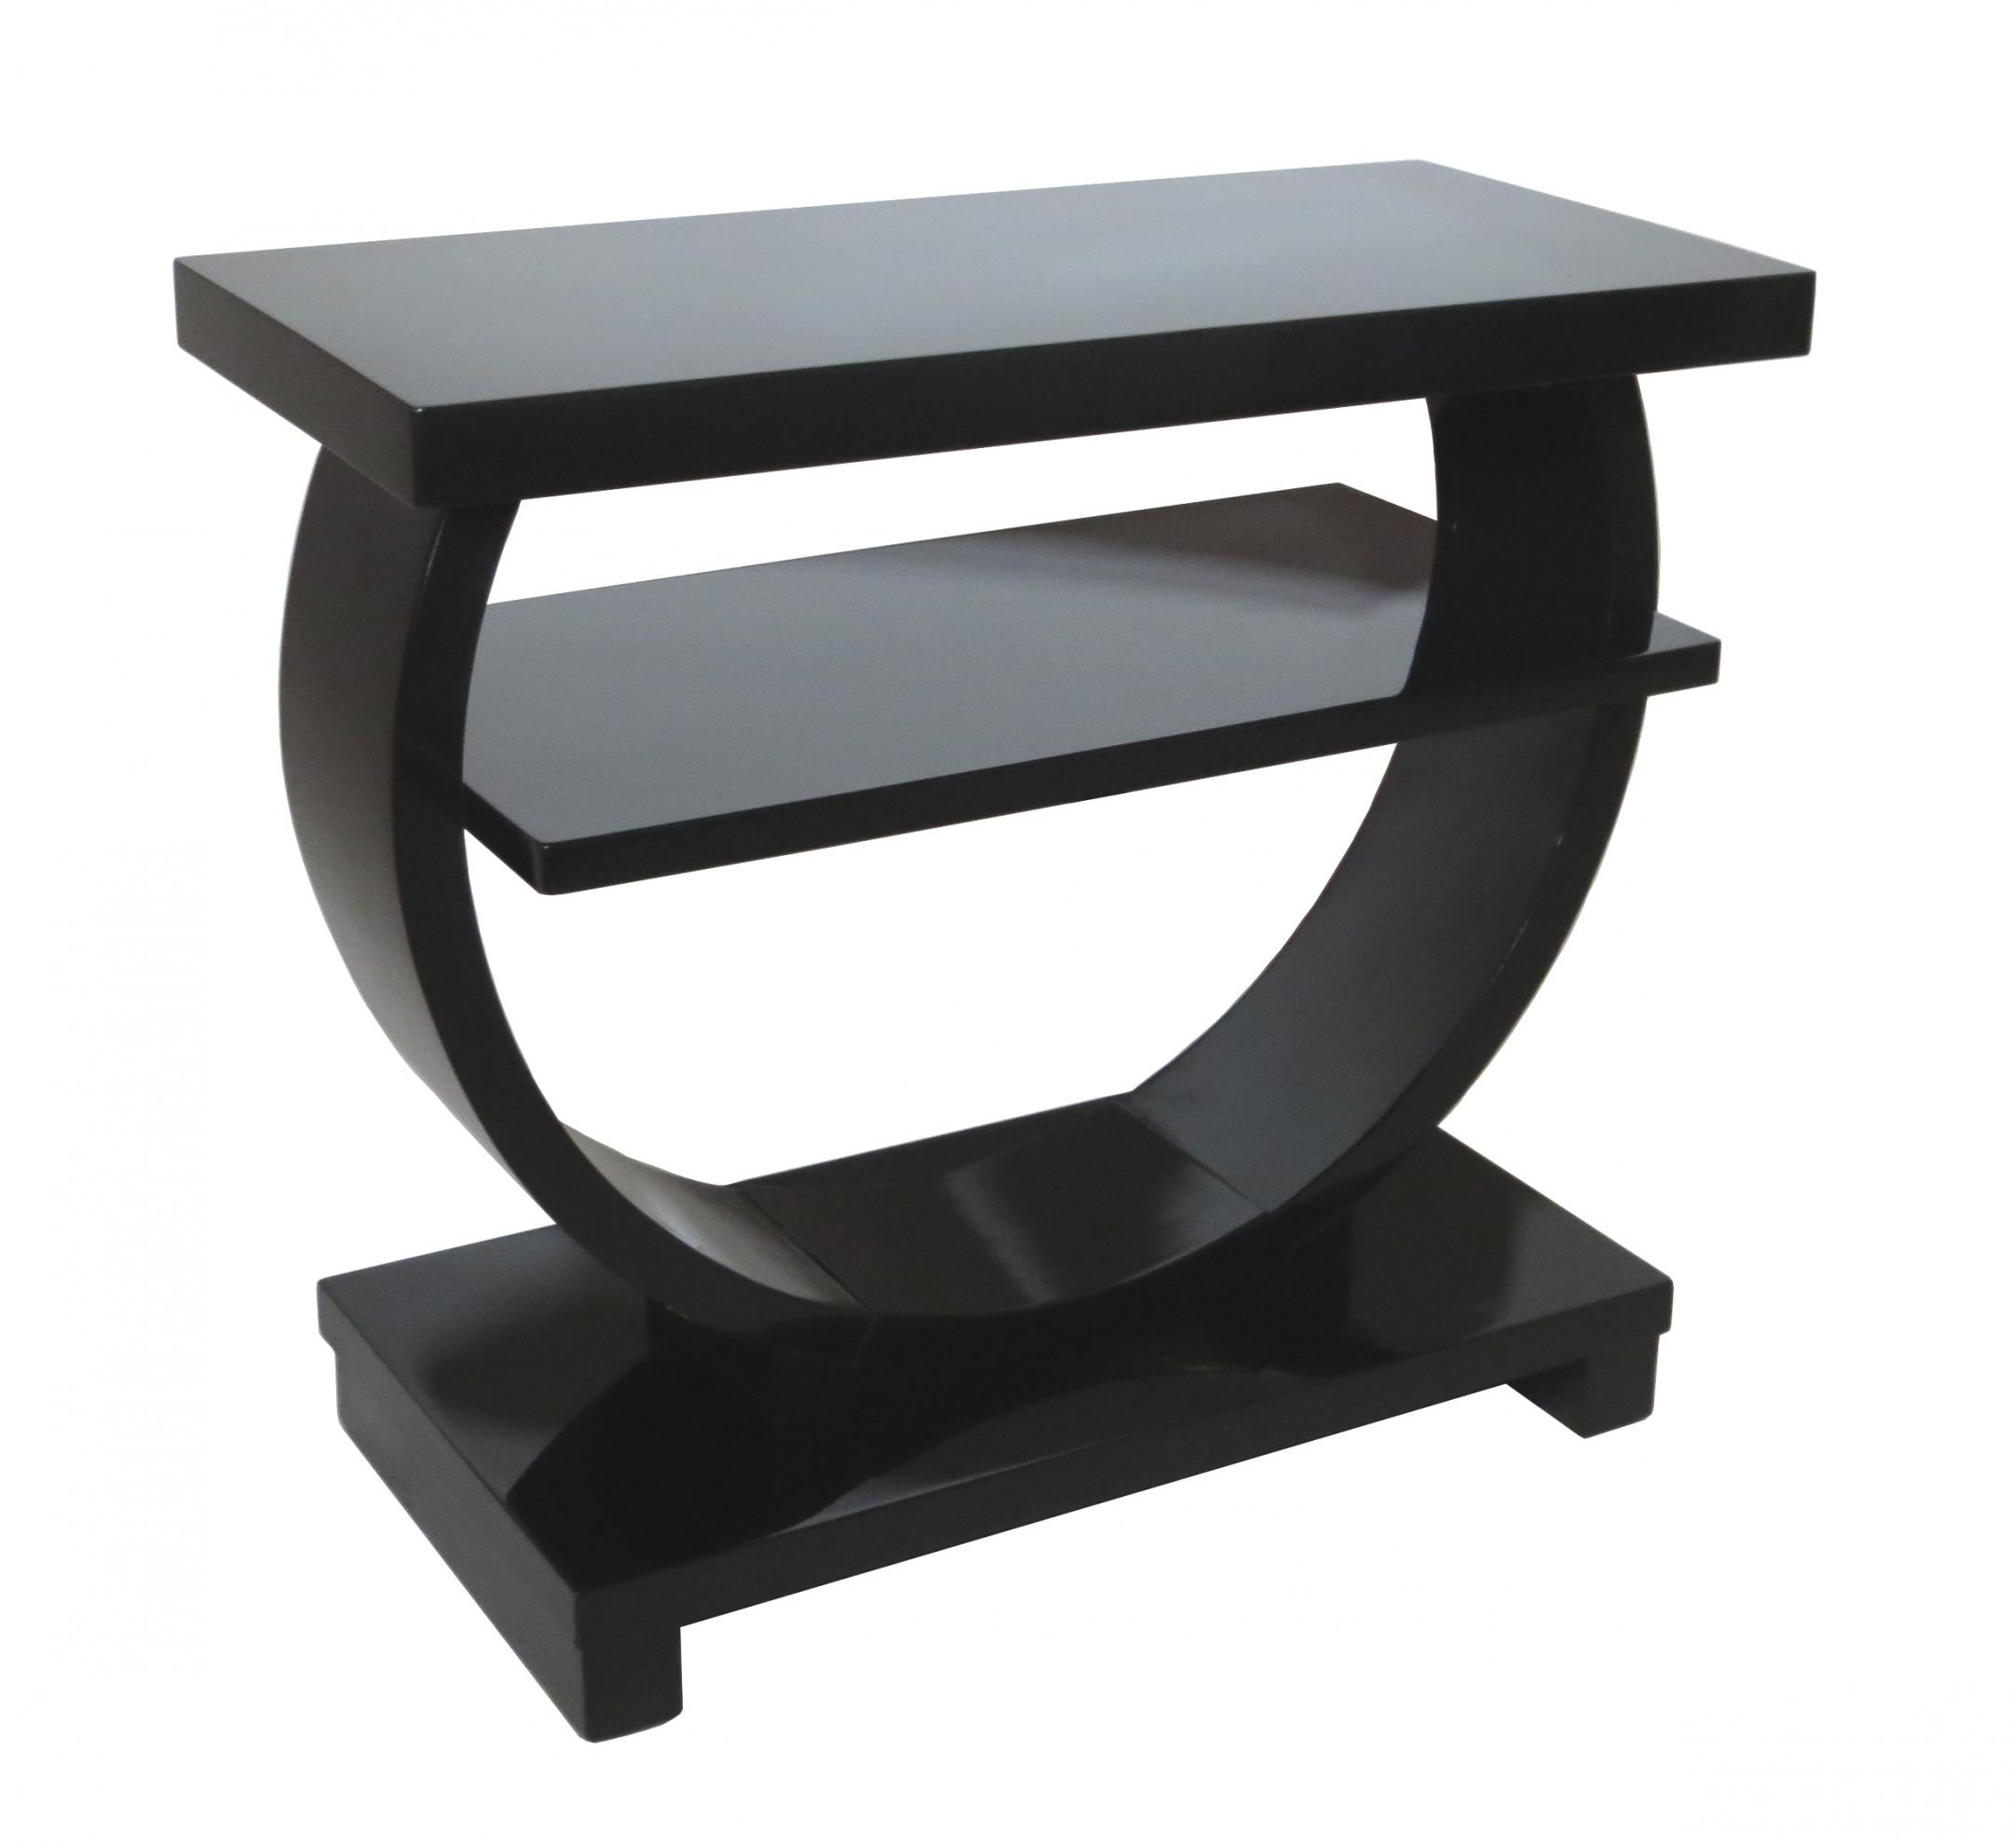 Modernage American Art Deco Black Lacquer Side Table (Short)